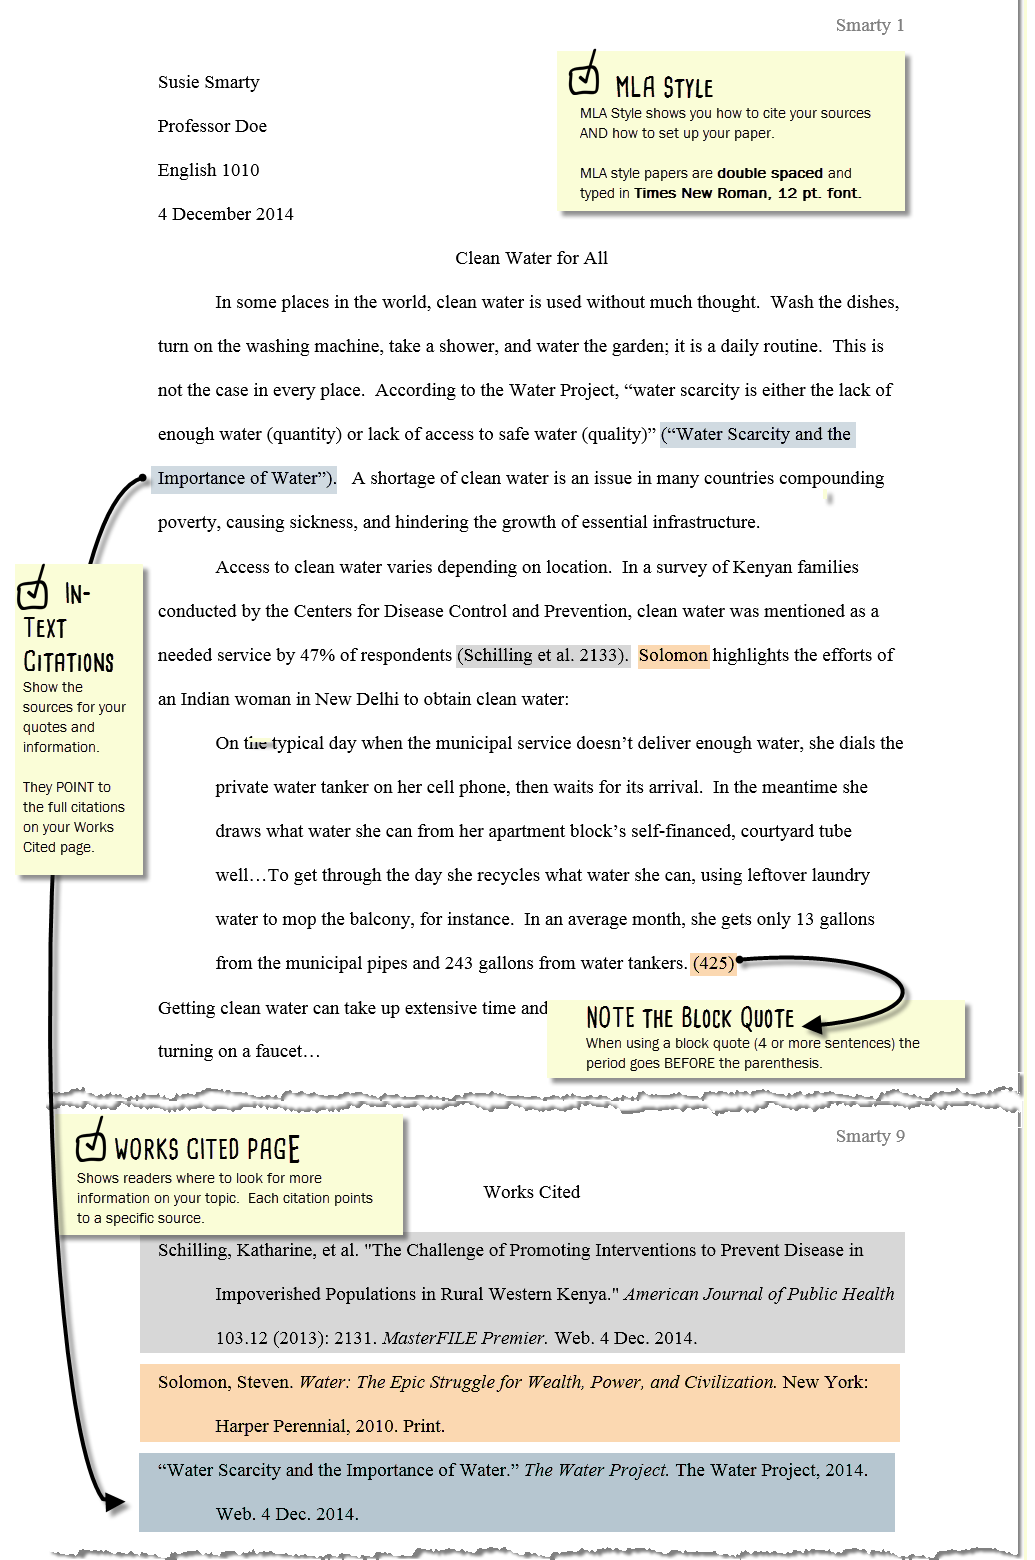 using citations in a paper mla citations library home an mla paper follows mla style mla style shows you how to cite your sources